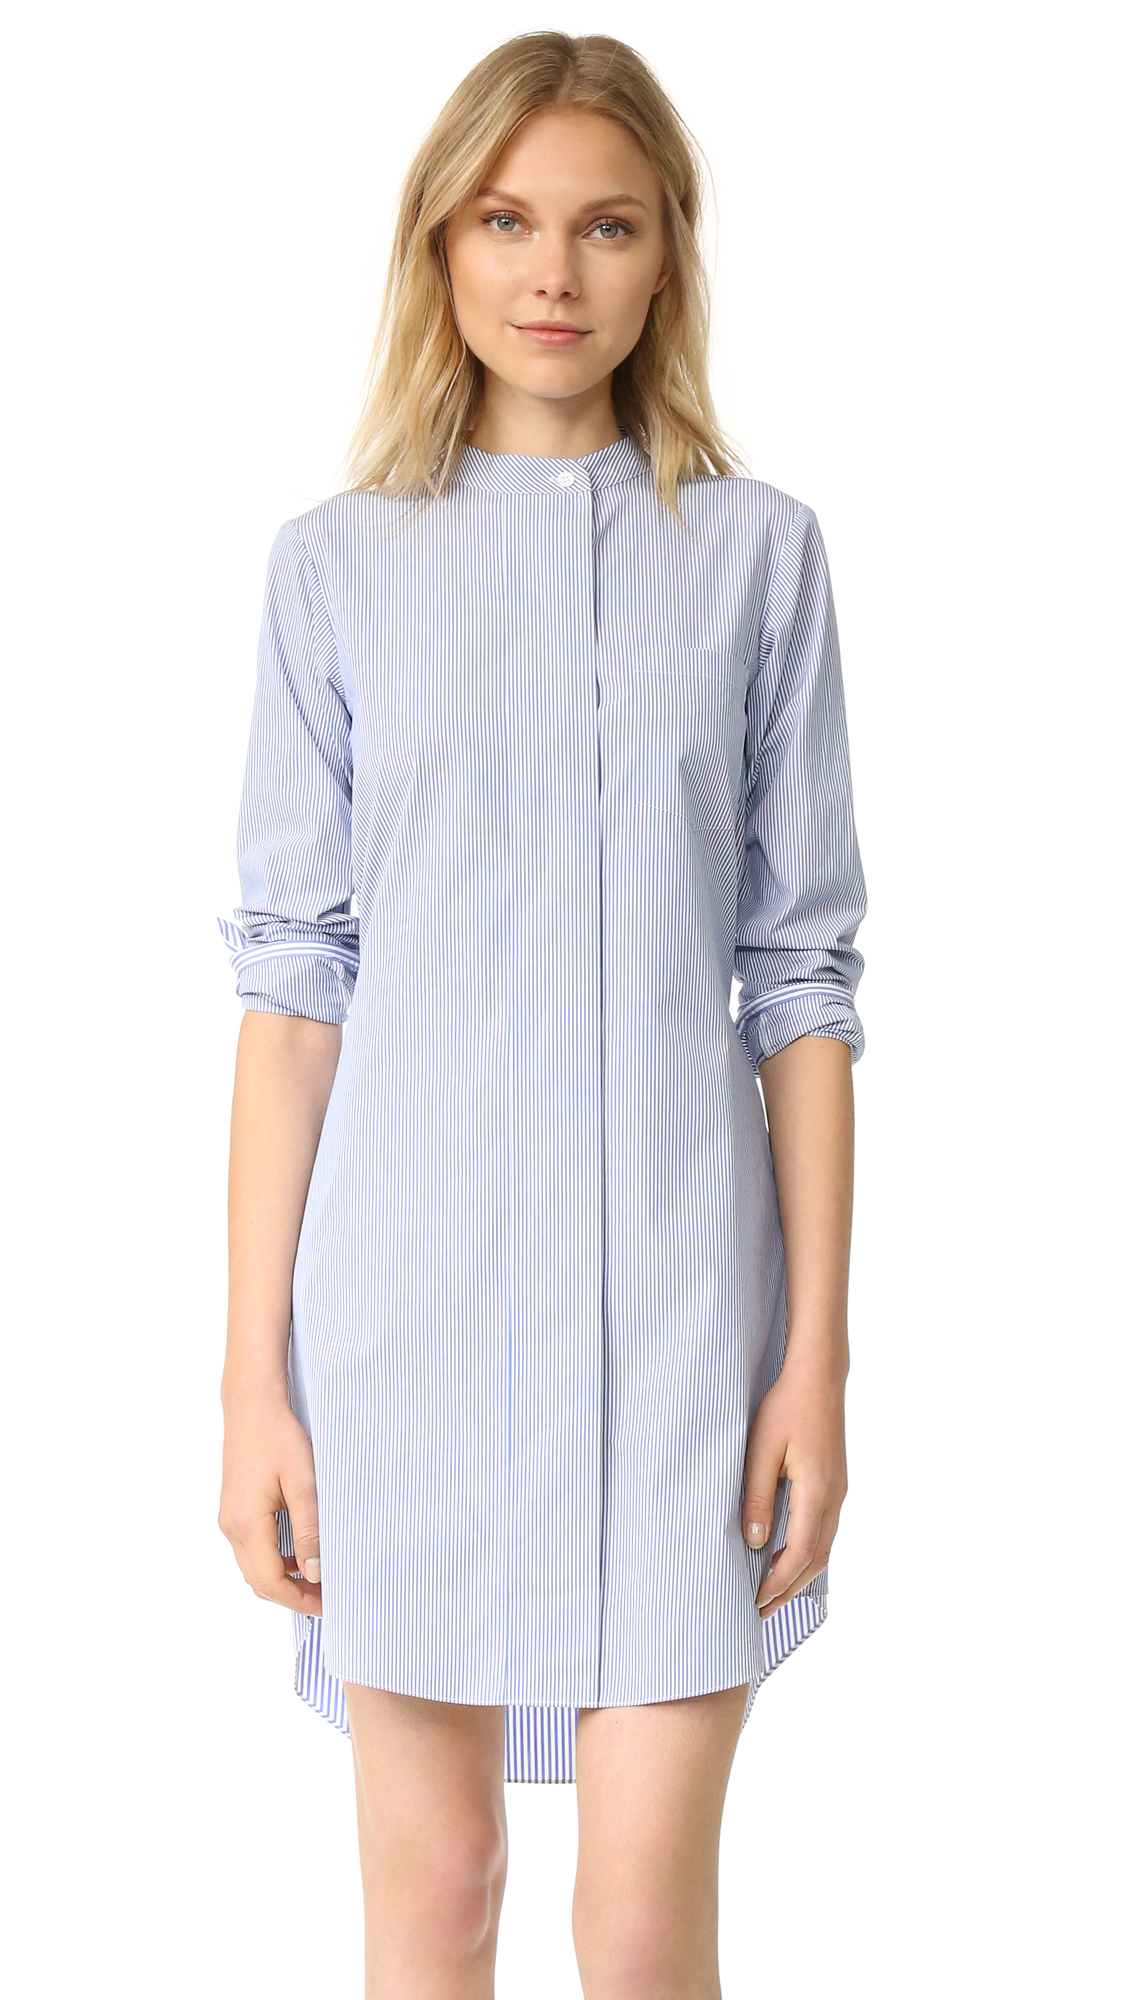 Theory Jodalee Dress - Blue/White at Shopbop